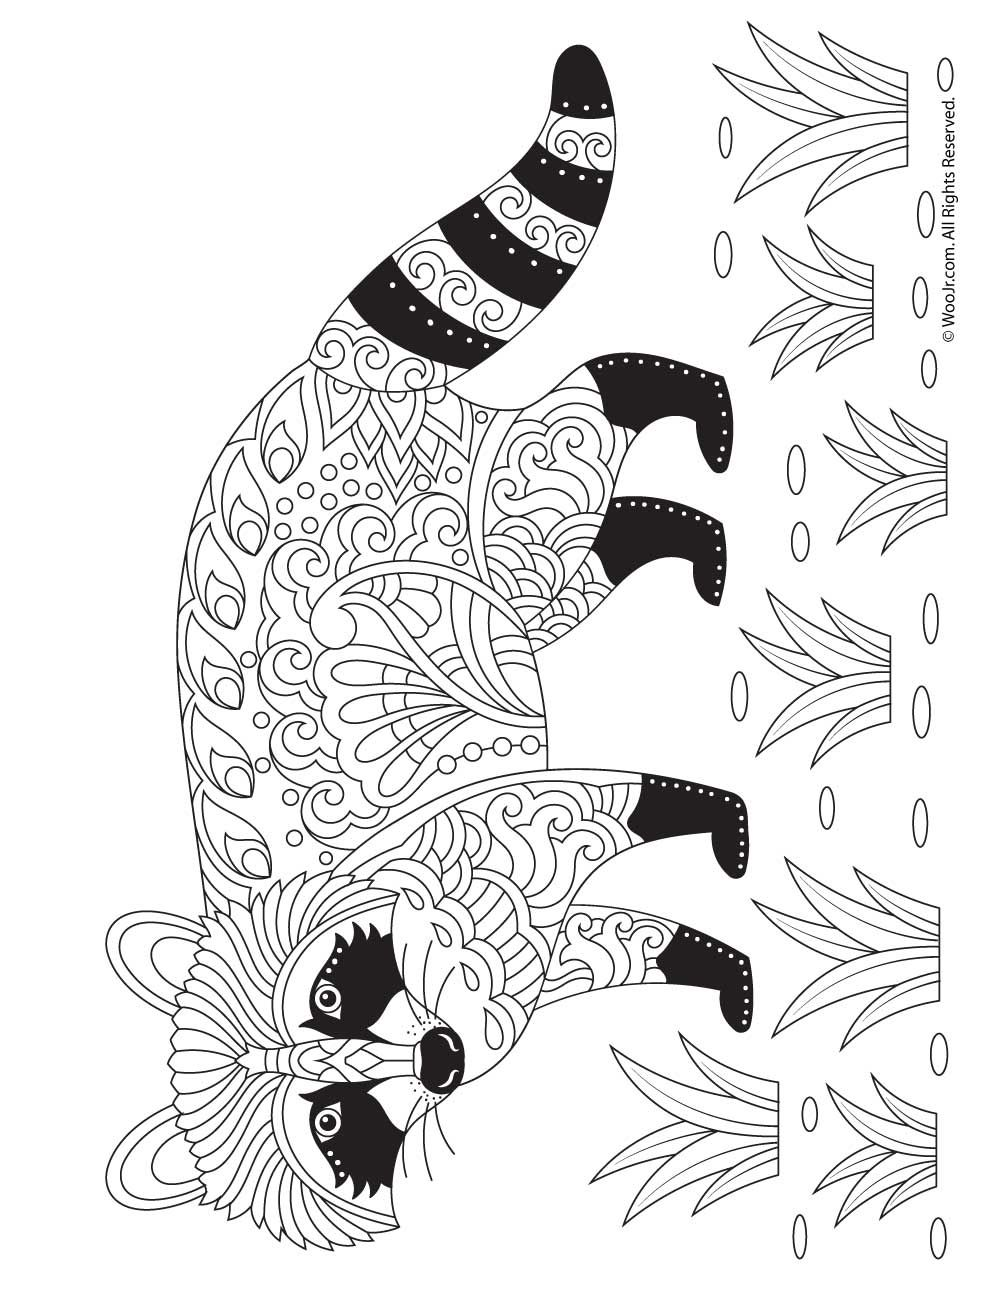 Raccoon Adult Coloring Page Animal Coloring Pages Deer Coloring